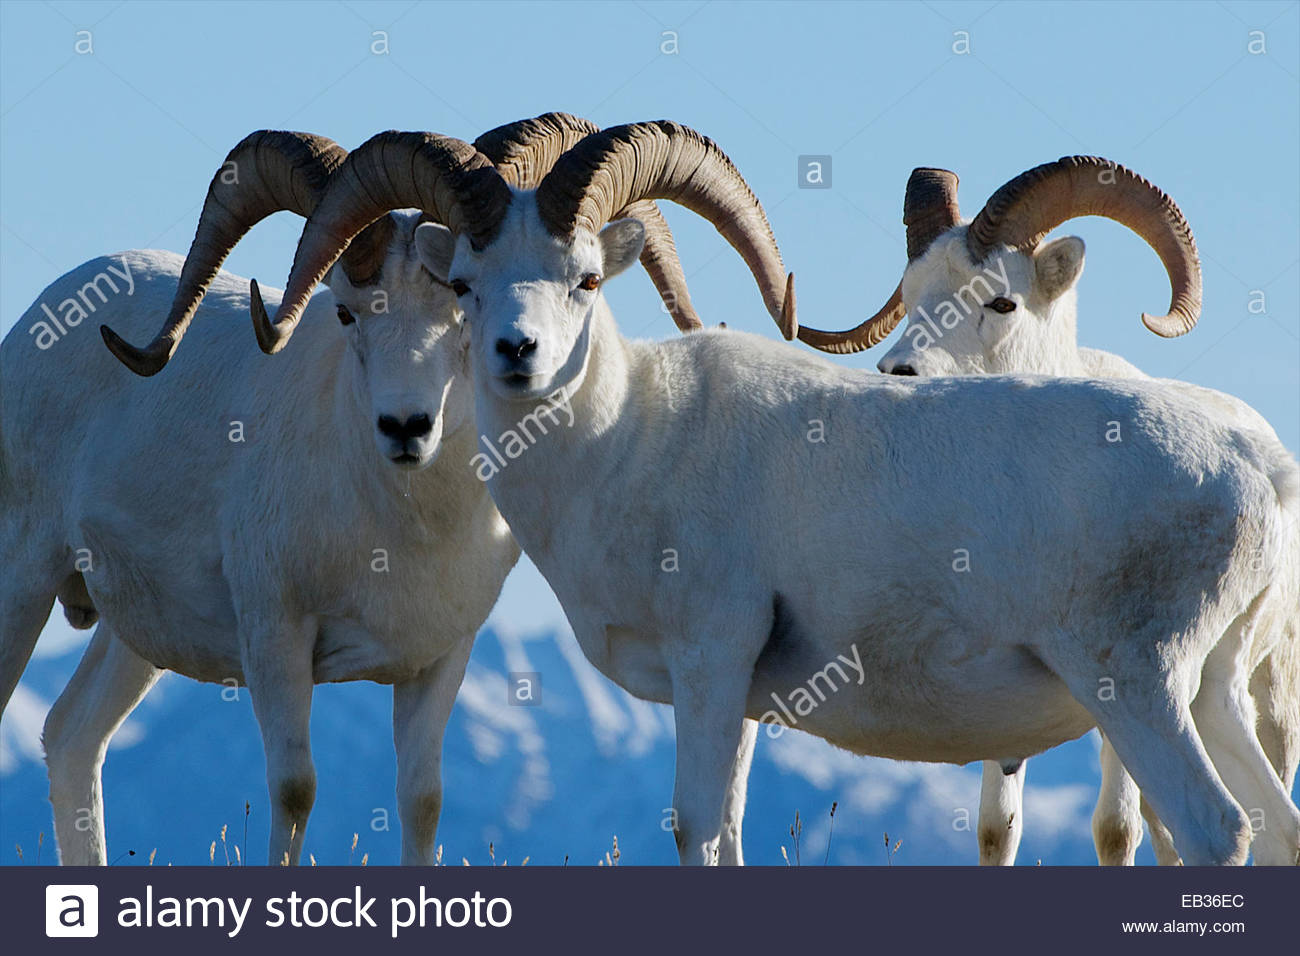 Male dall sheep stand closely together. - Stock Image